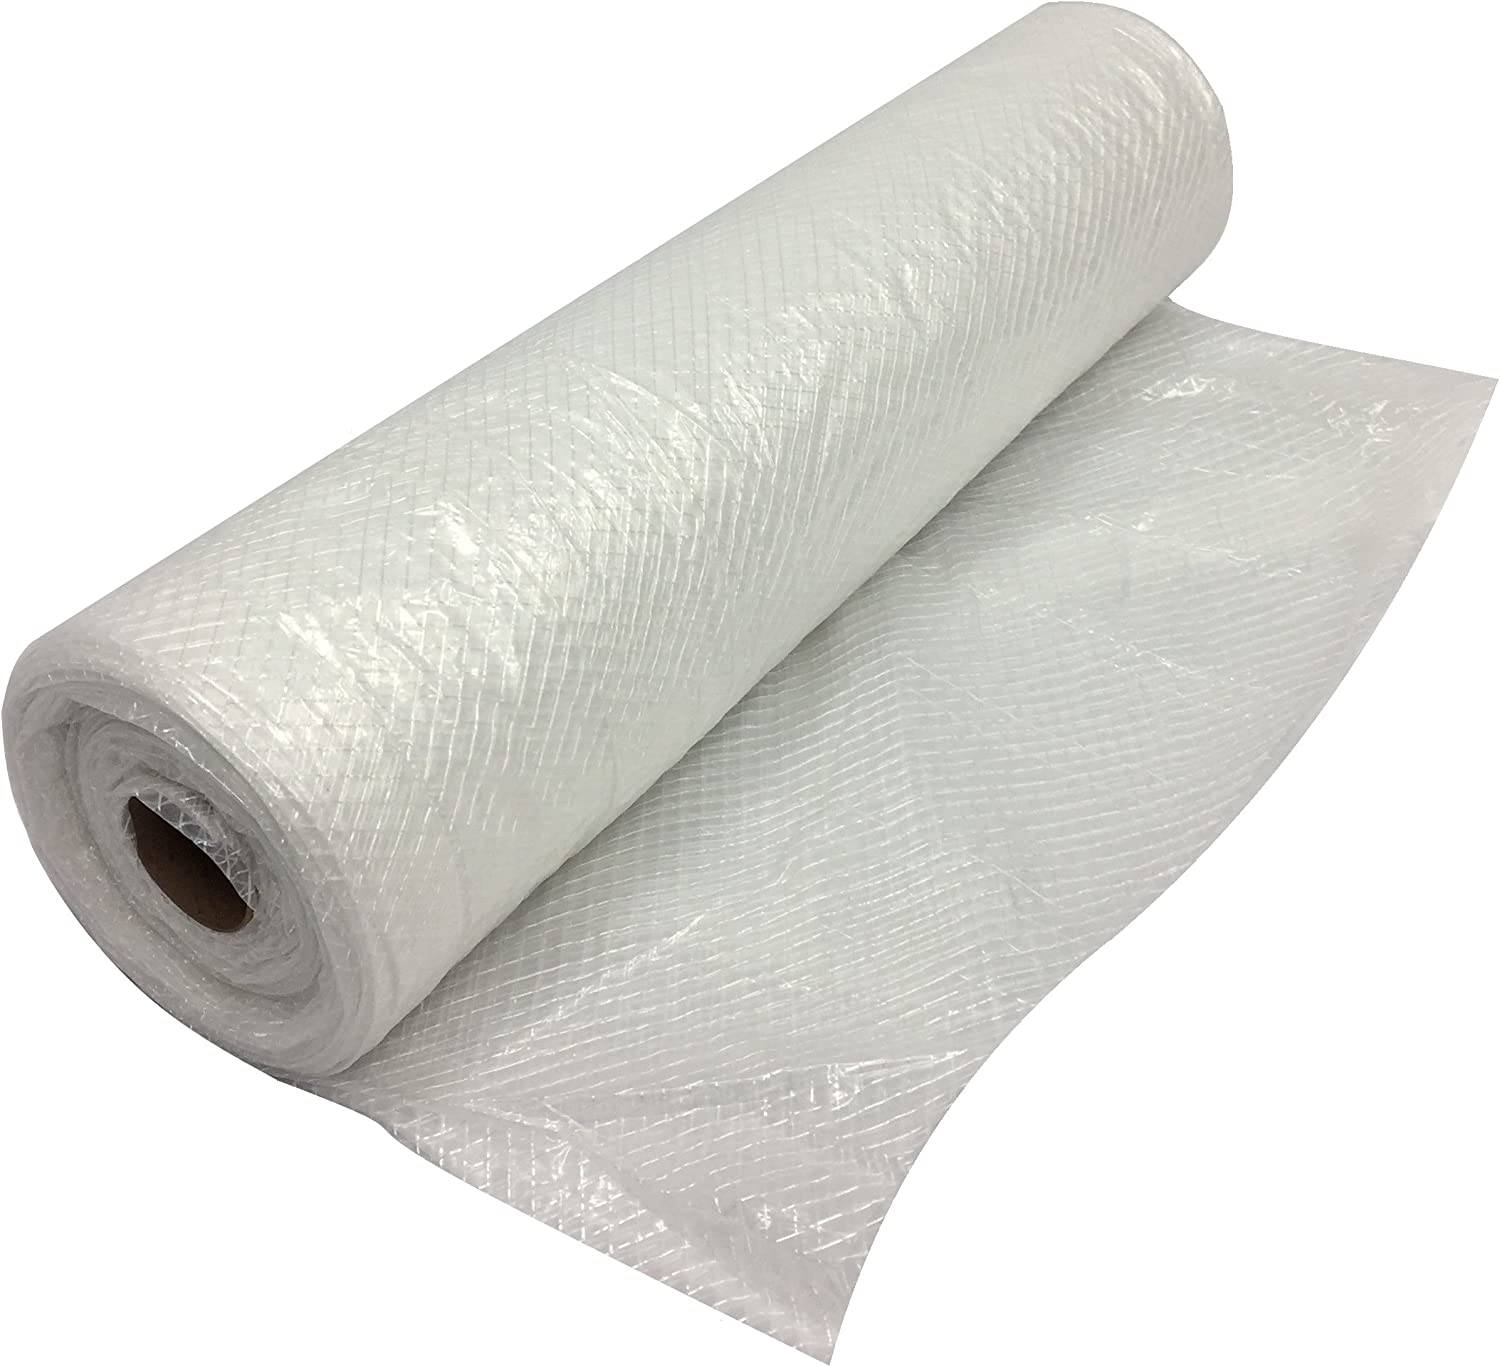 Thesafetyhouse Plastic String Reinforced Poly Sheeting 20 Feet X 100 Feet 6 Mil Nominal Transparent White Durable Top Quality Visqueen Amazon Com